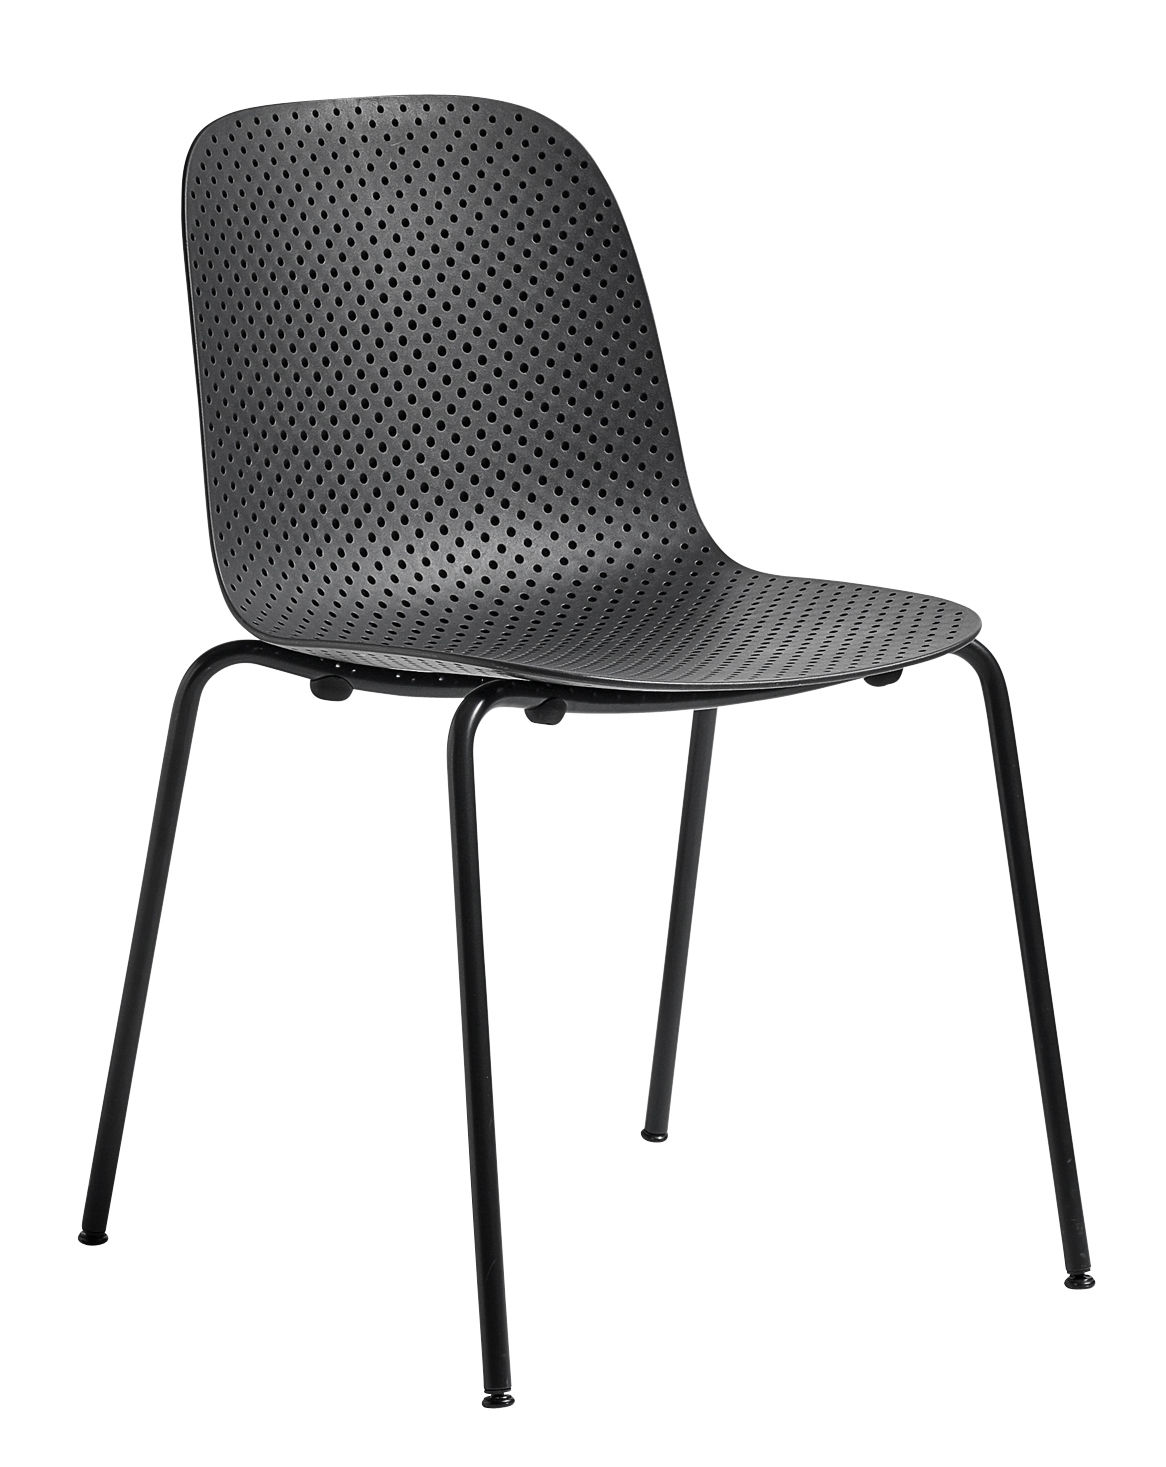 Furniture - Chairs - 13eighty Stacking chair - / Perforated plastic by Hay - Black - Epoxy lacquered steel, Perforated polypropylene